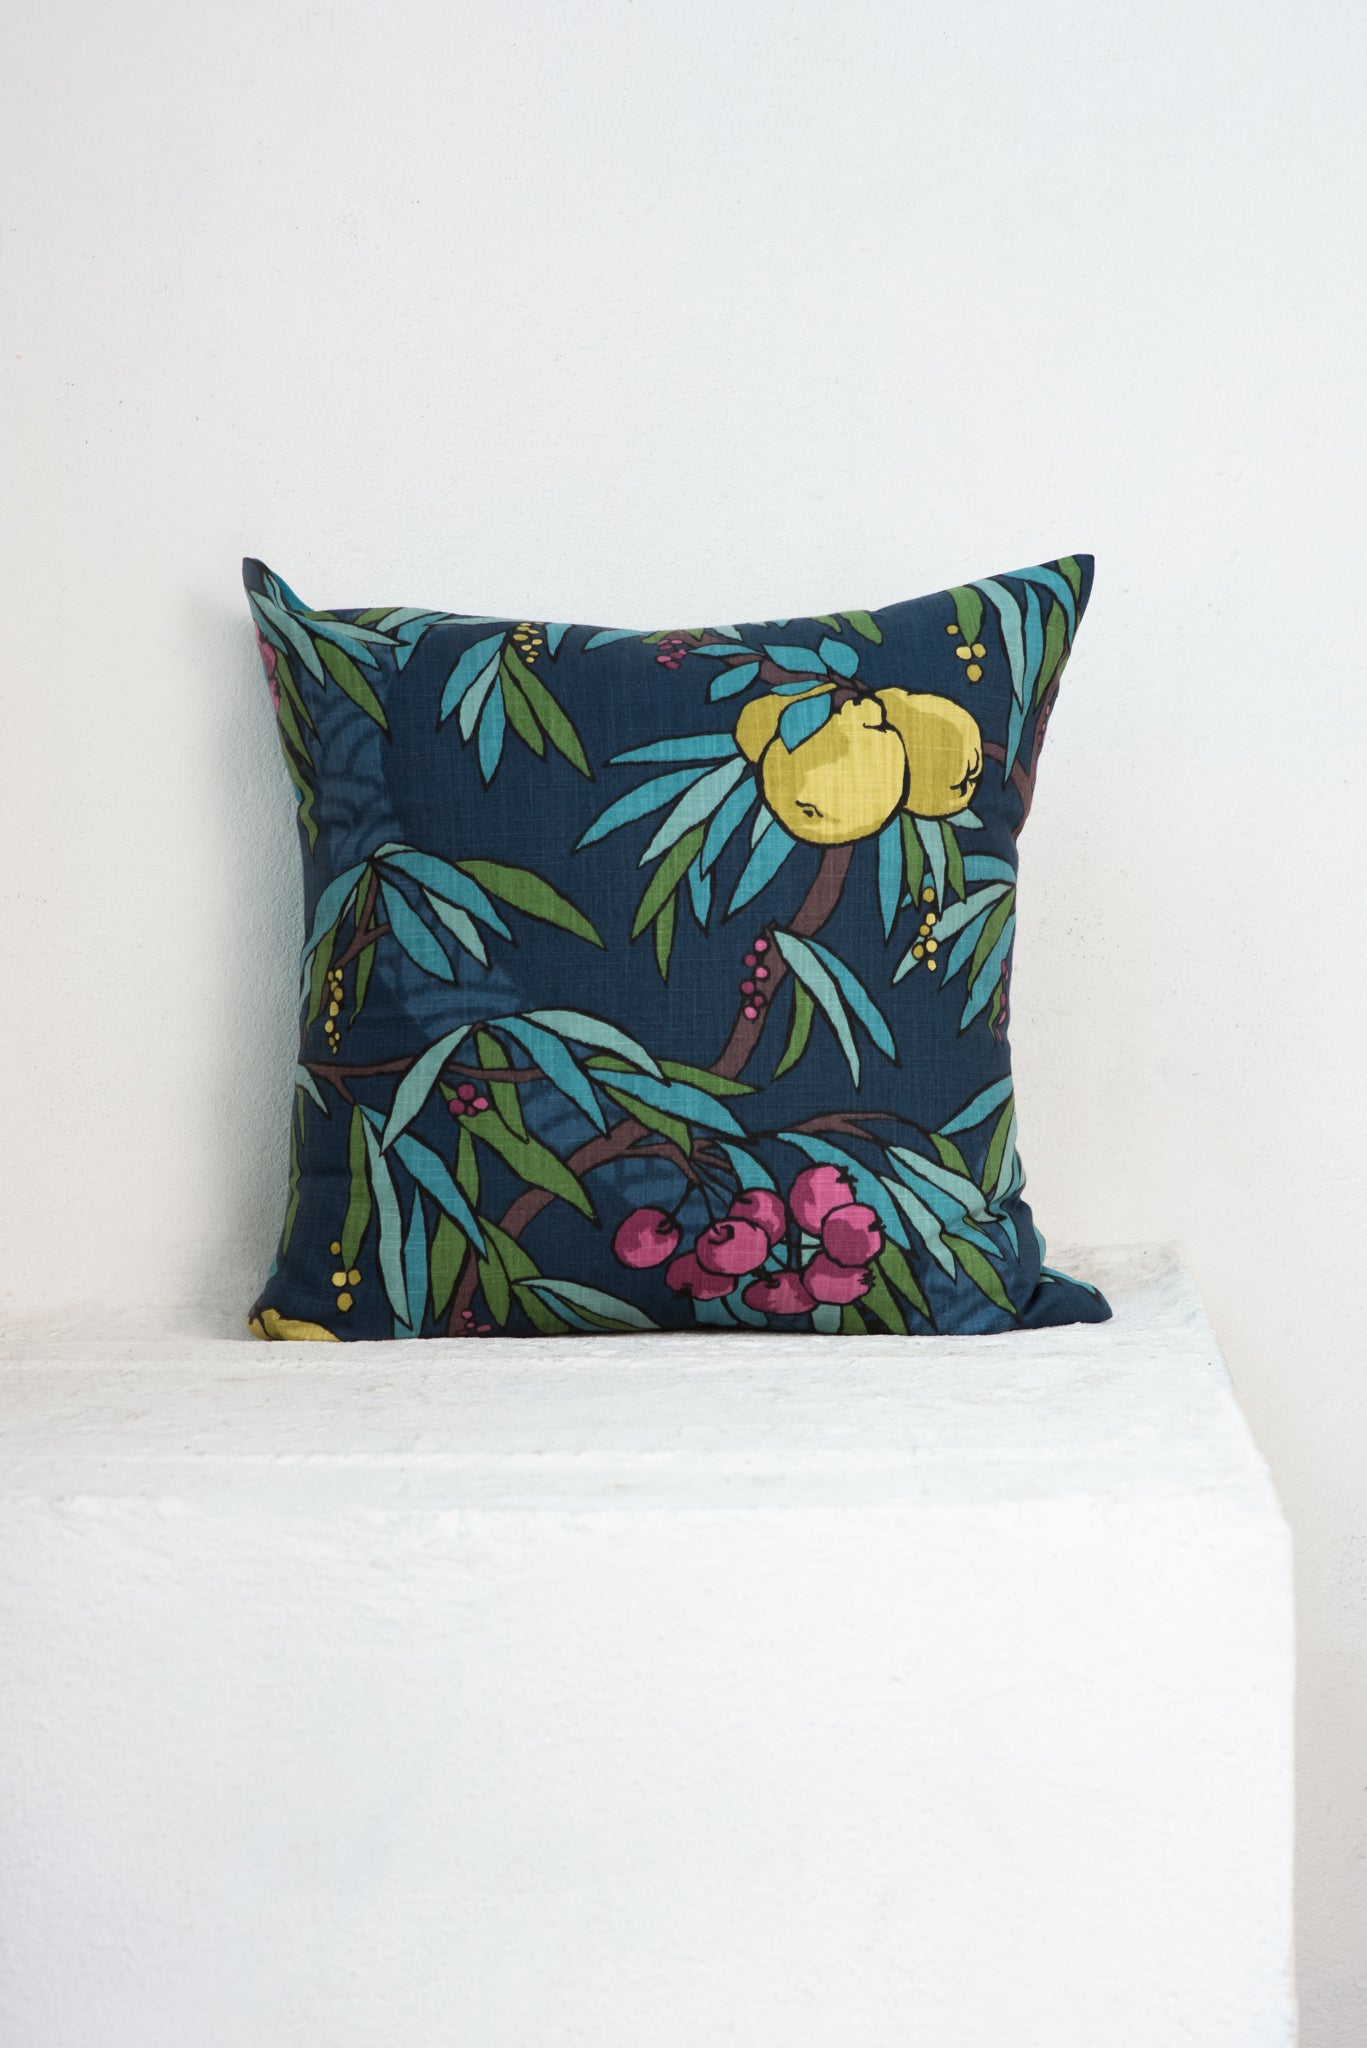 Custom Pillow in Madcap Cottage